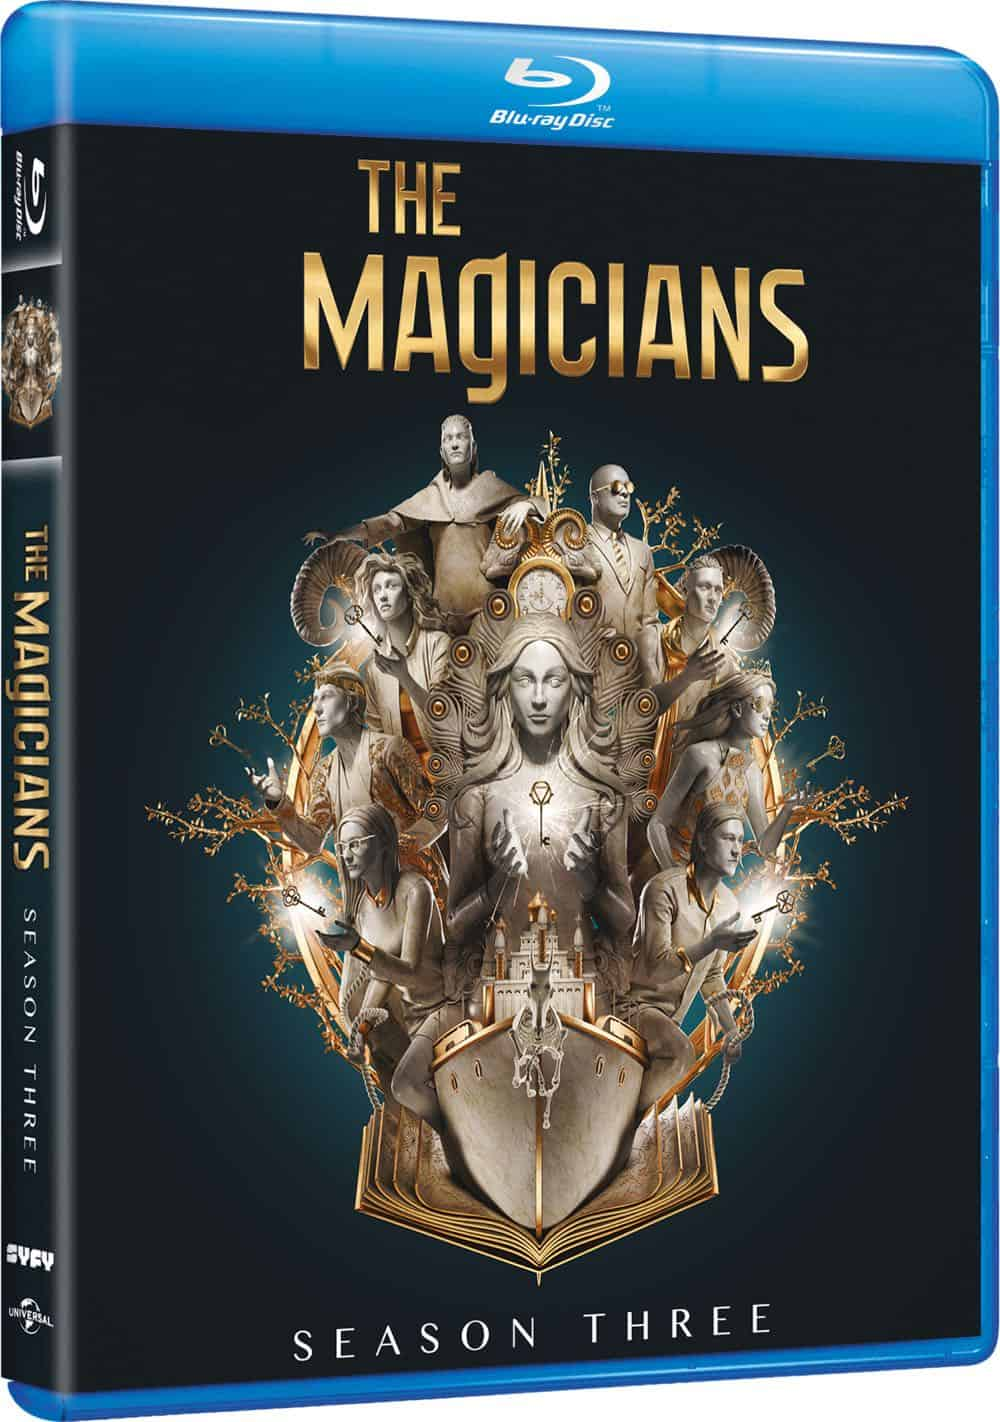 The Magicians Season 3 Bluray Cover 2